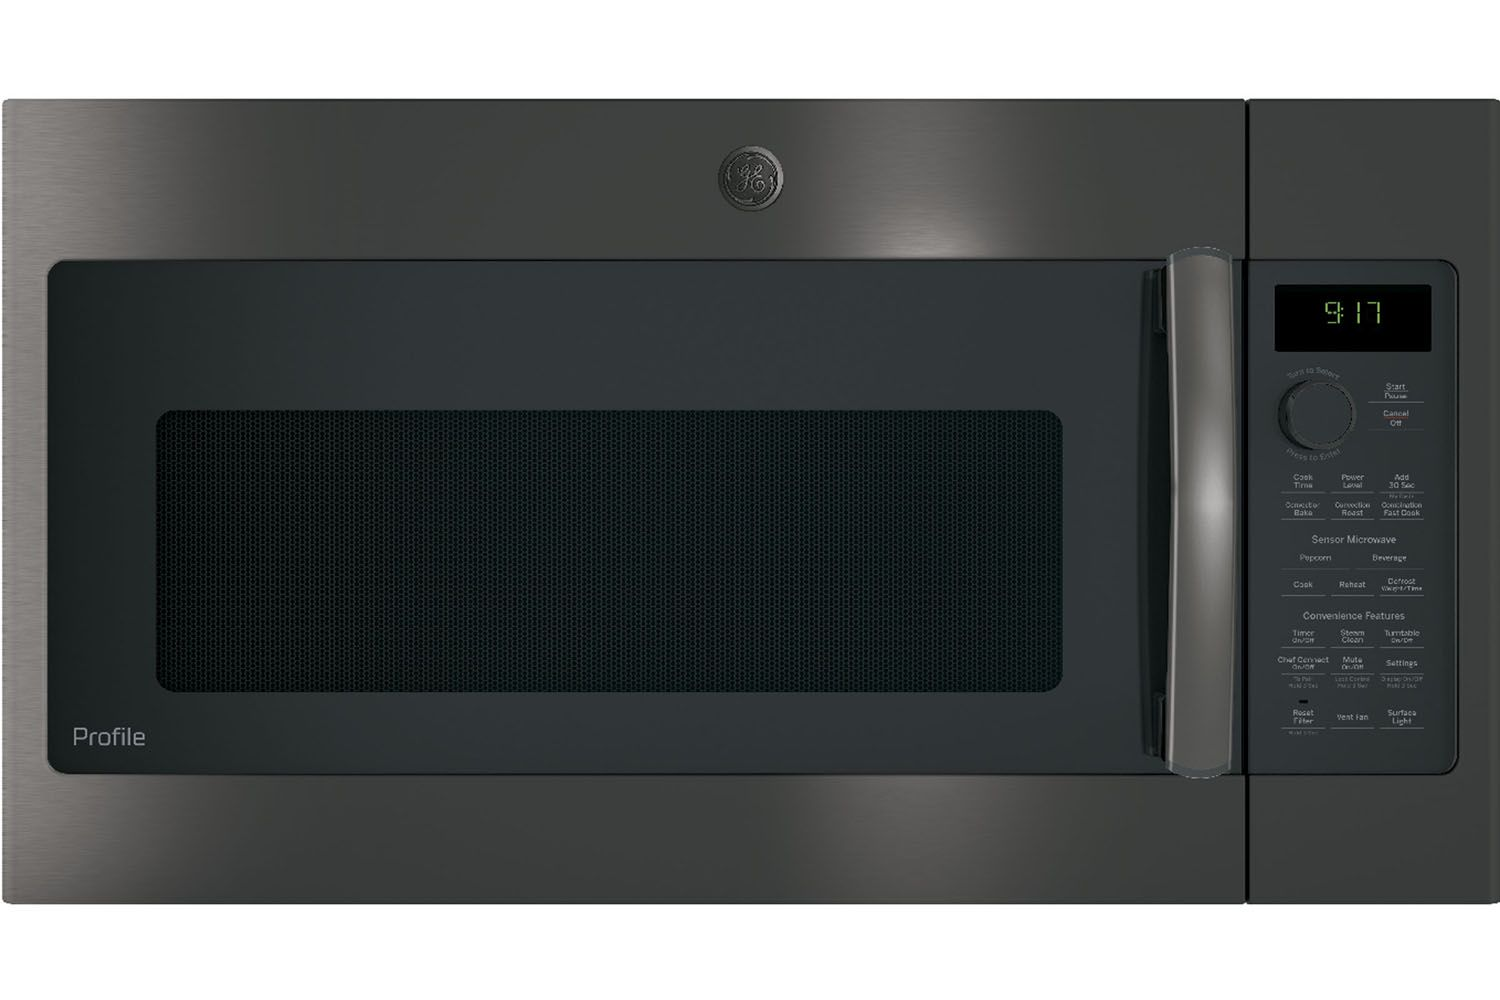 Ge Profile Black Stainless Steel Over The Range Convection Microwave Oven Pvm9179blts